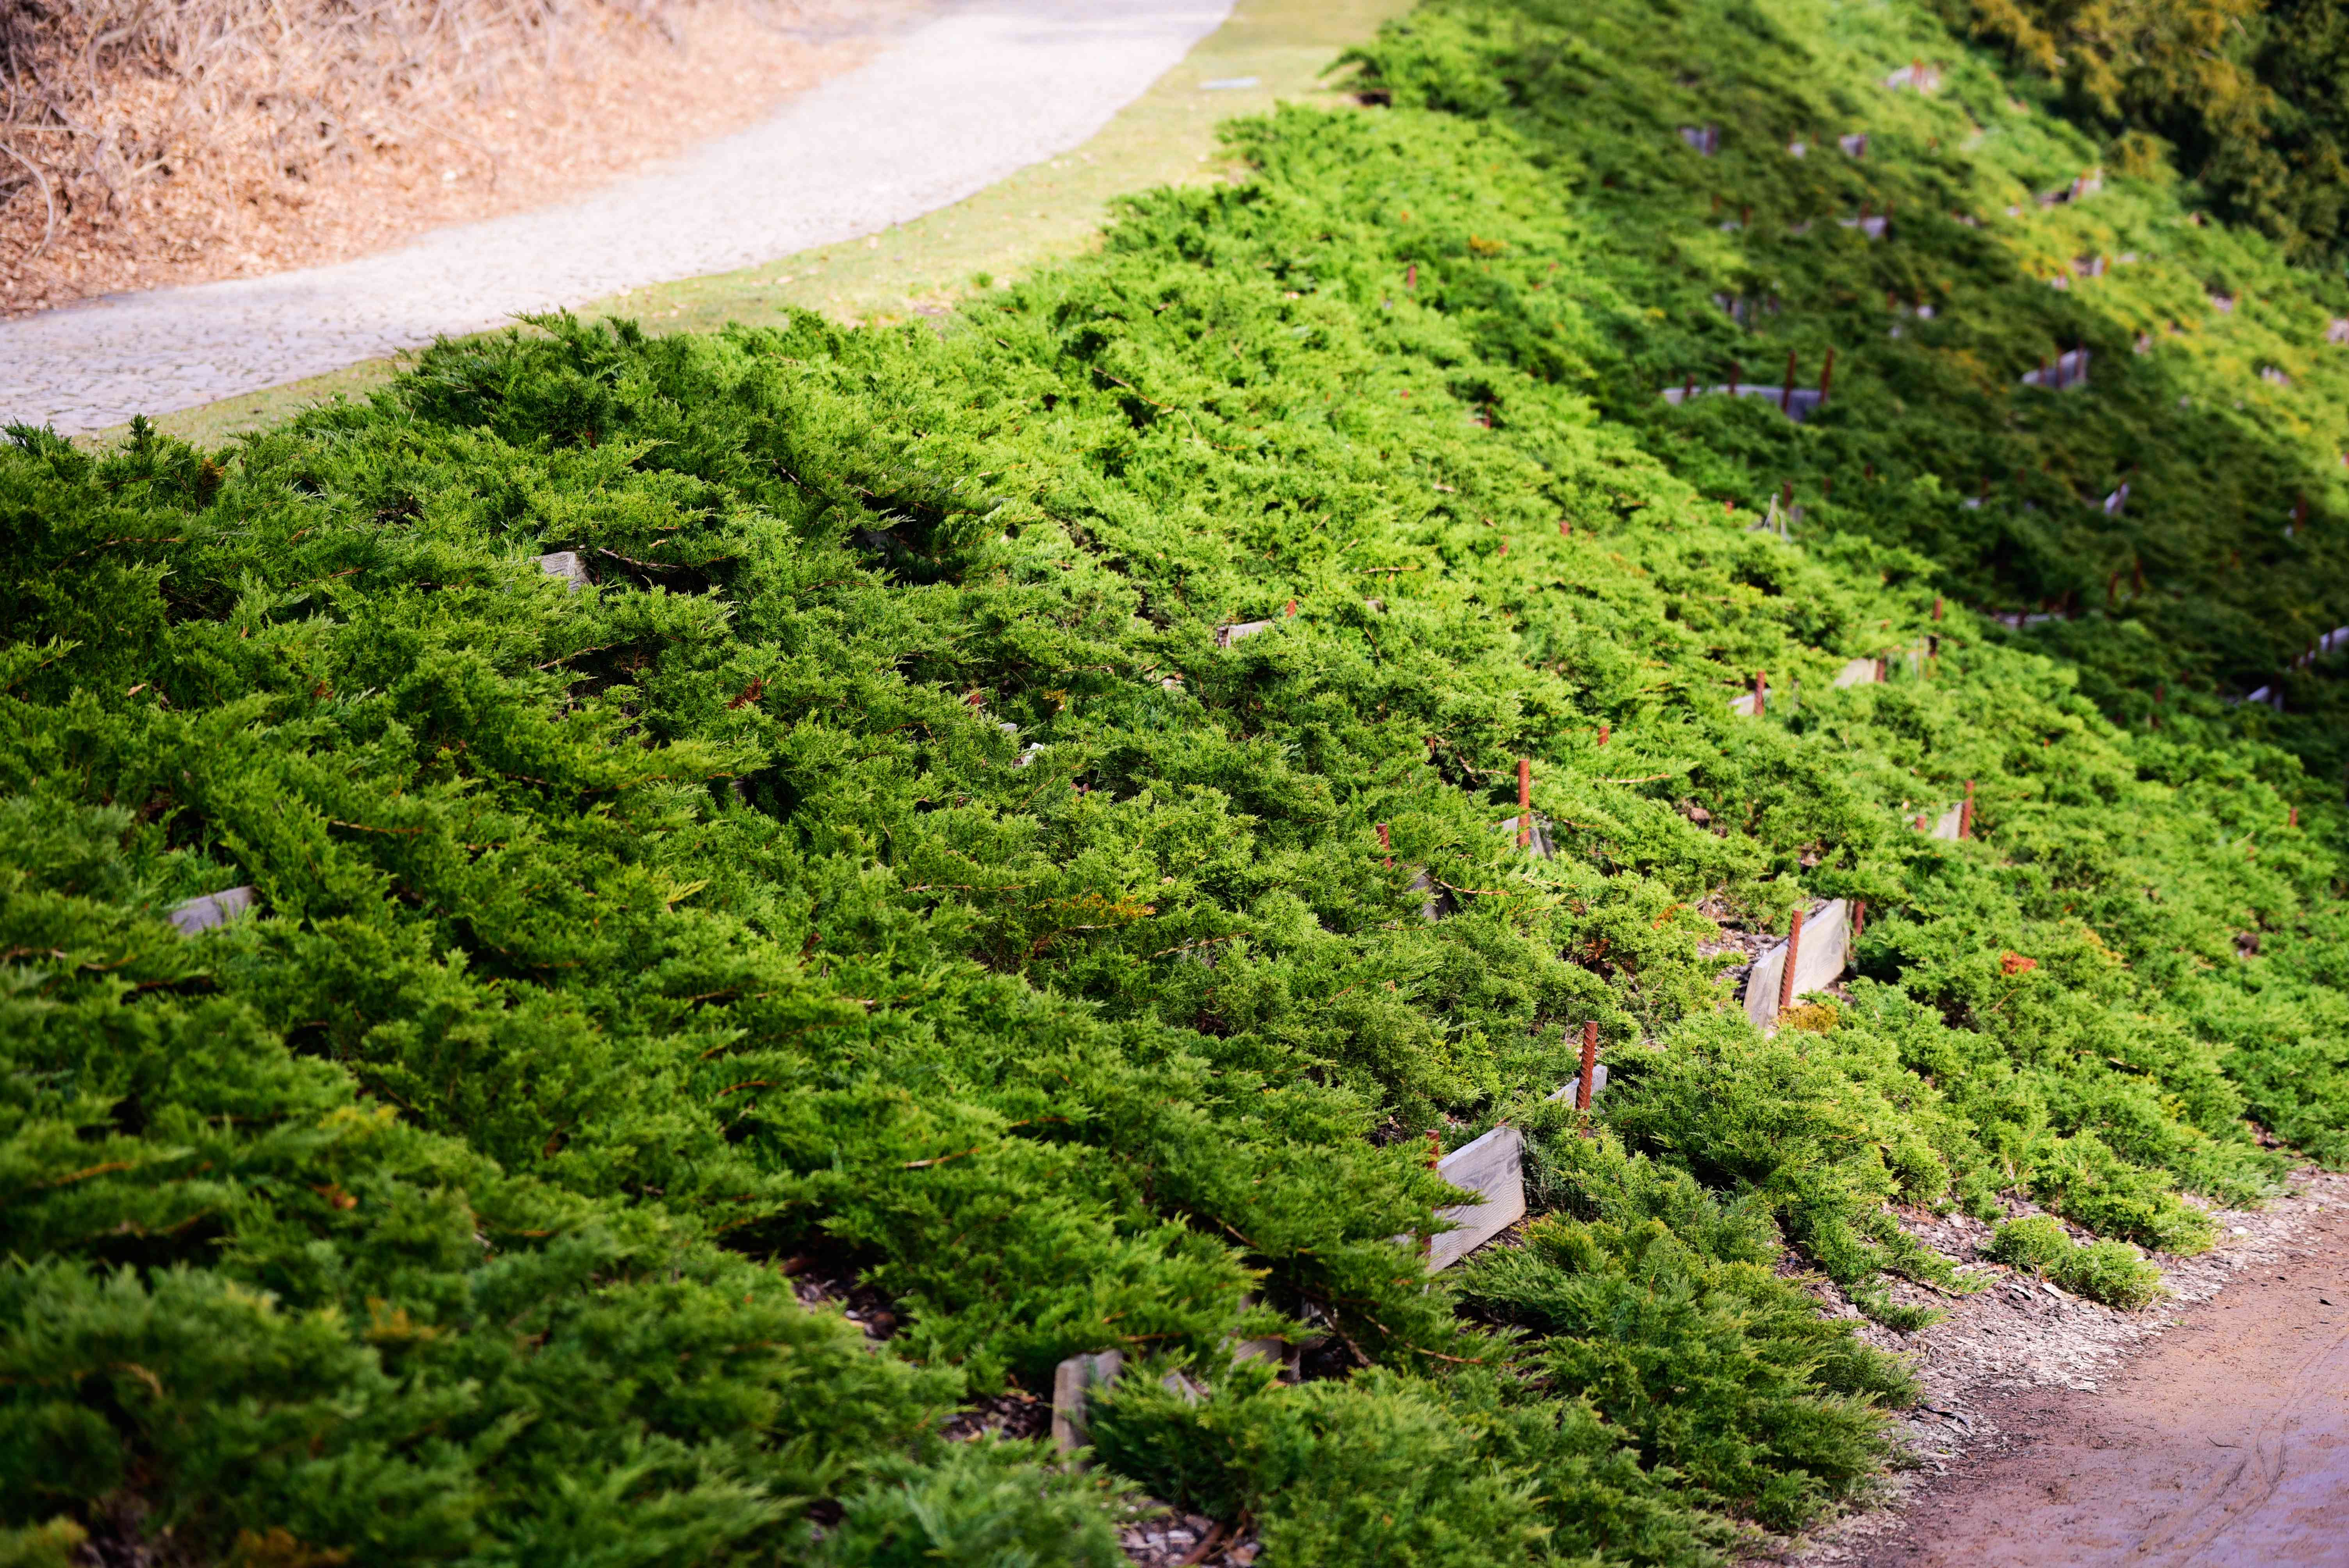 Creeping juniper plant on side of hill and two pathways